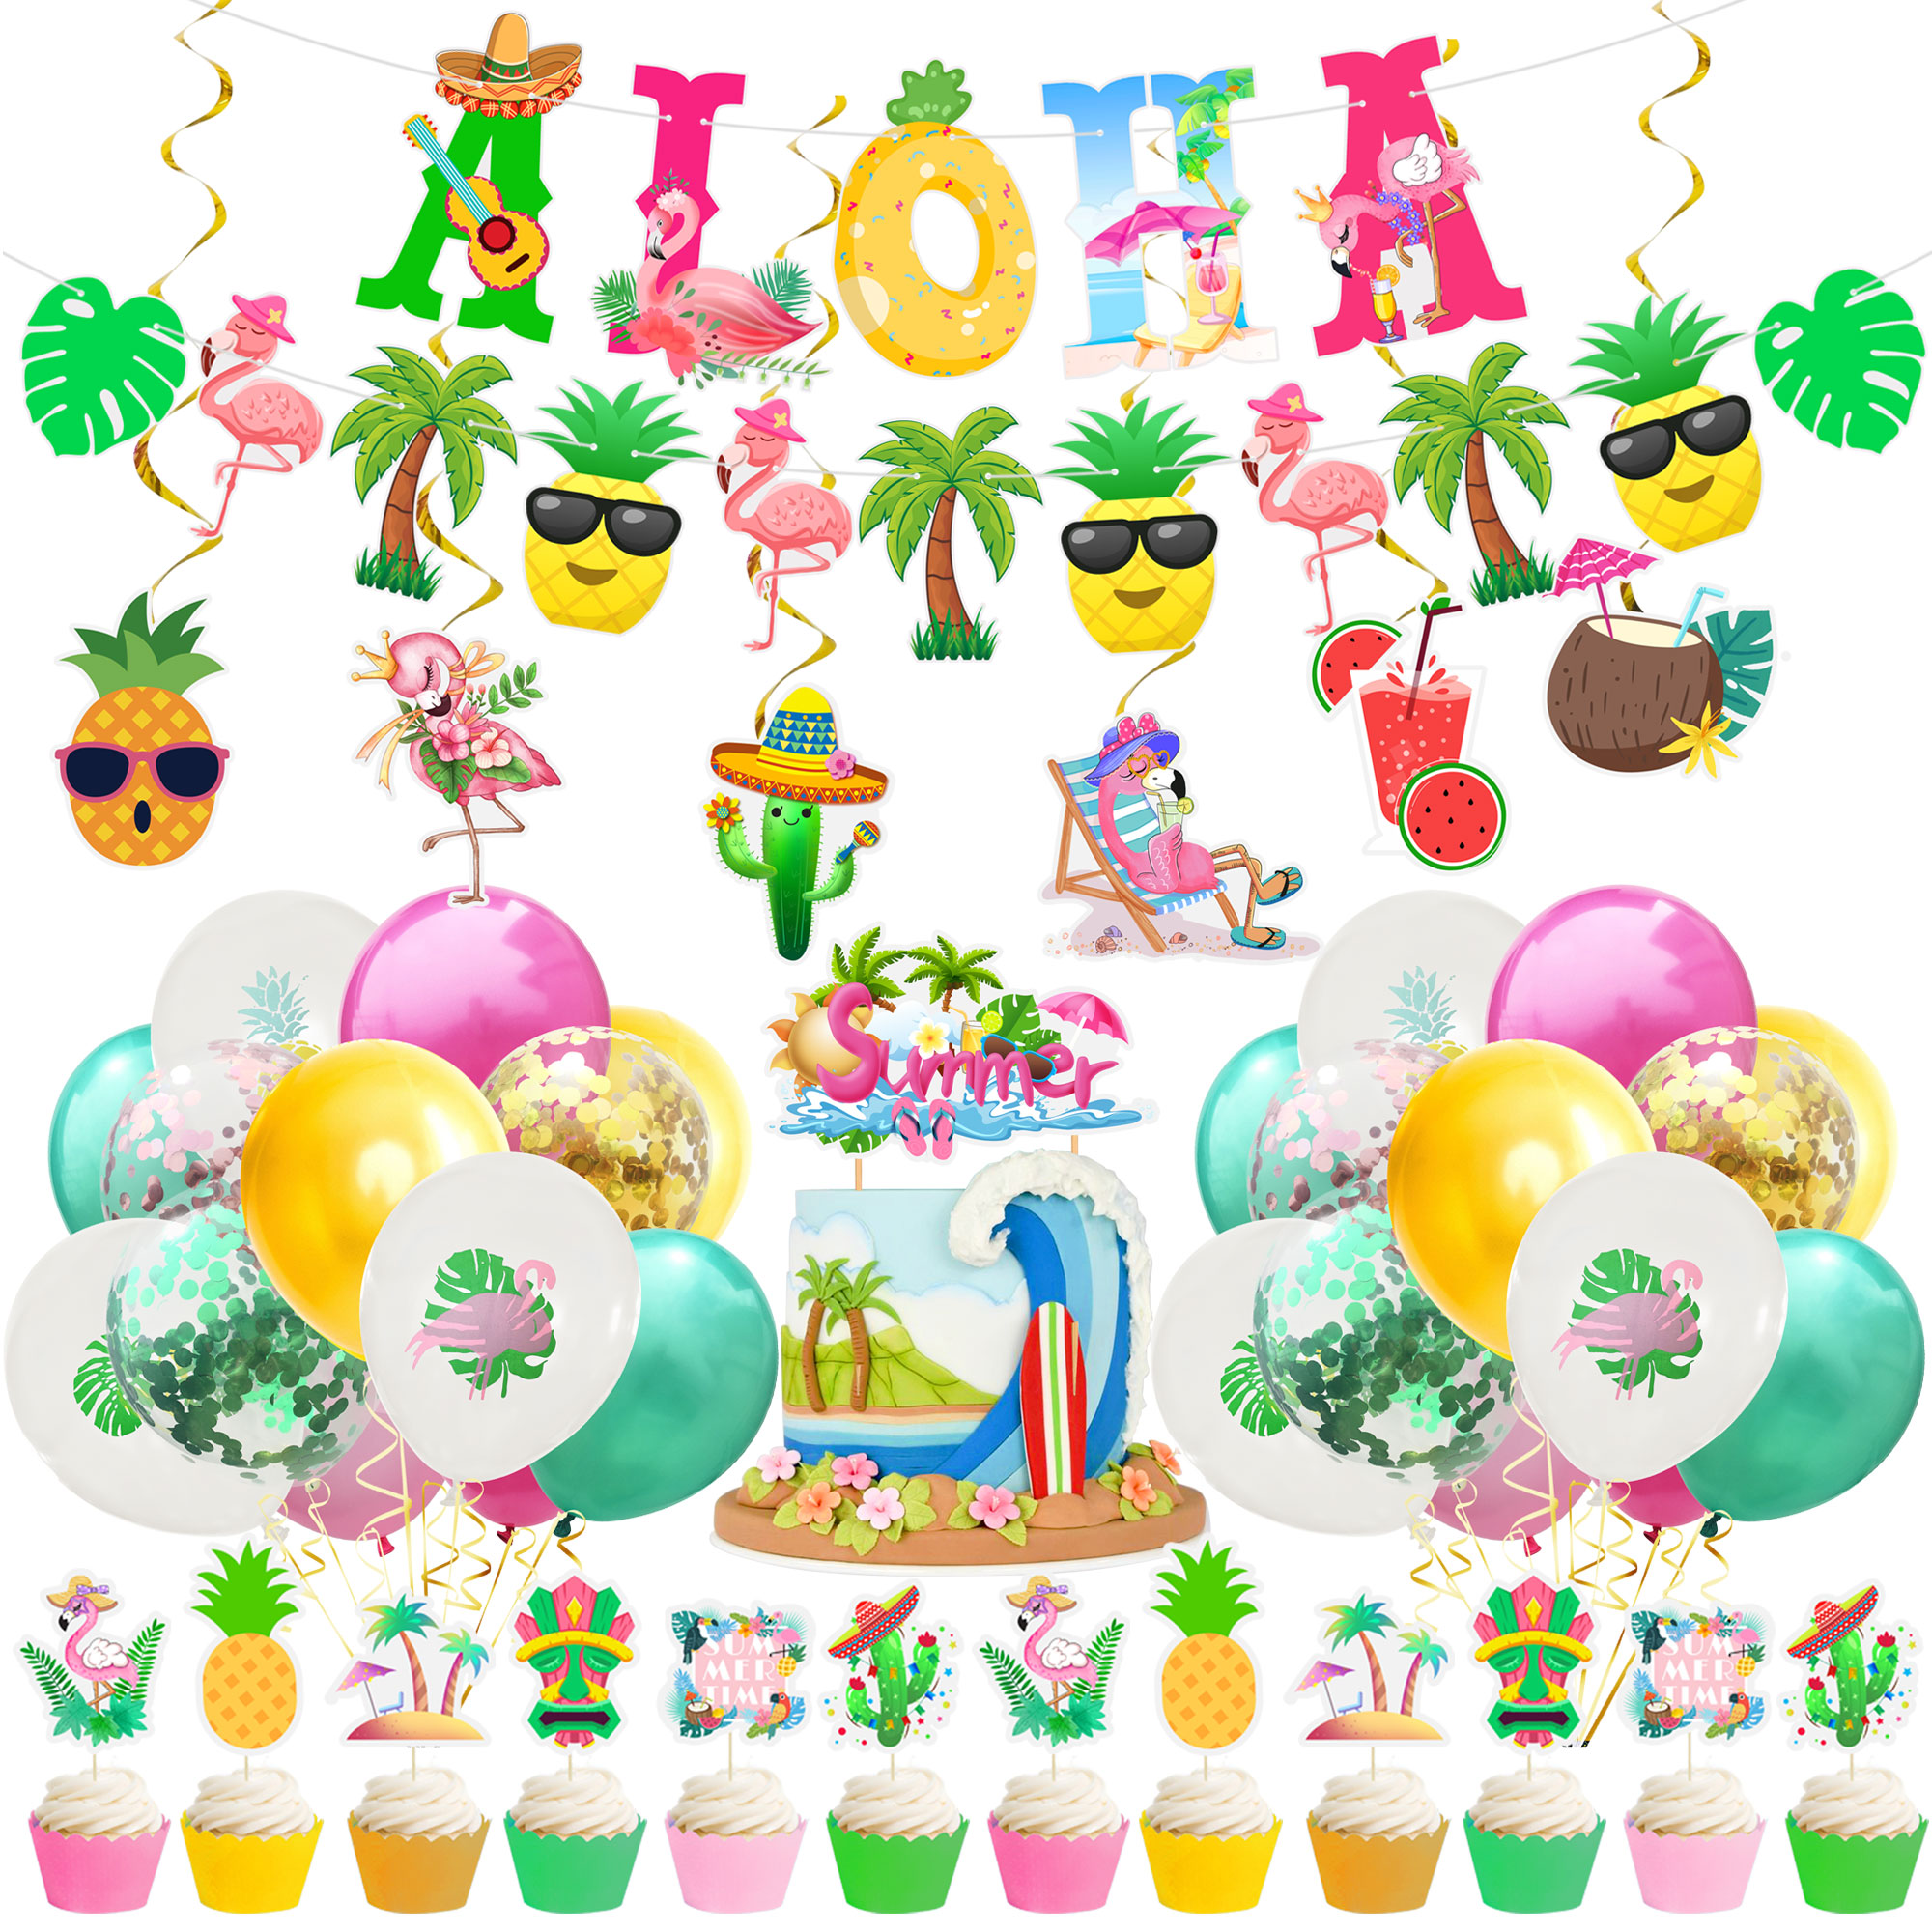 ALOHA Happy Birthday Banner Flamingo Hawaiian Tropical Party Decor Holiday Summer Party Luau Aloha P